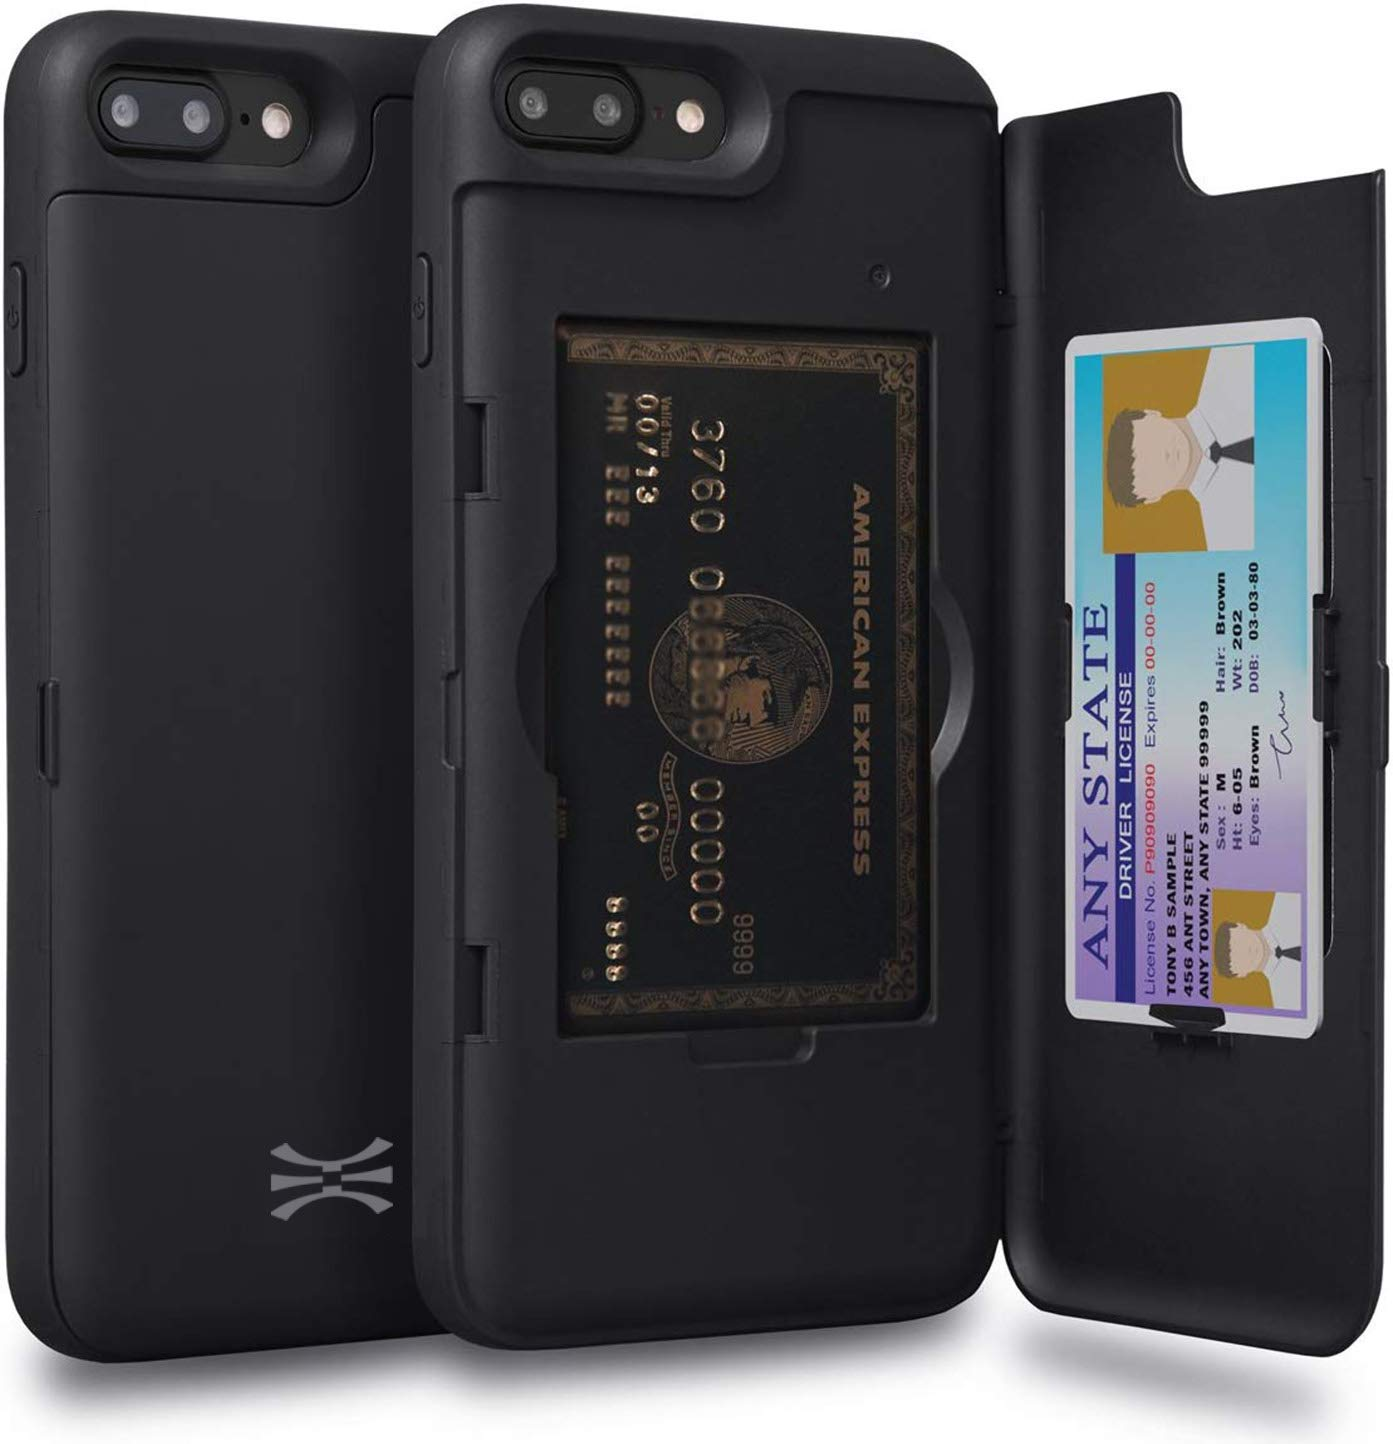 TORU CX PRO iPhone 8 Plus Wallet Case with Hidden ID Slot Credit Card Holder Hard Cover & Mirror for iPhone 8 Plus / iPhone 7 Plus - Matte Black